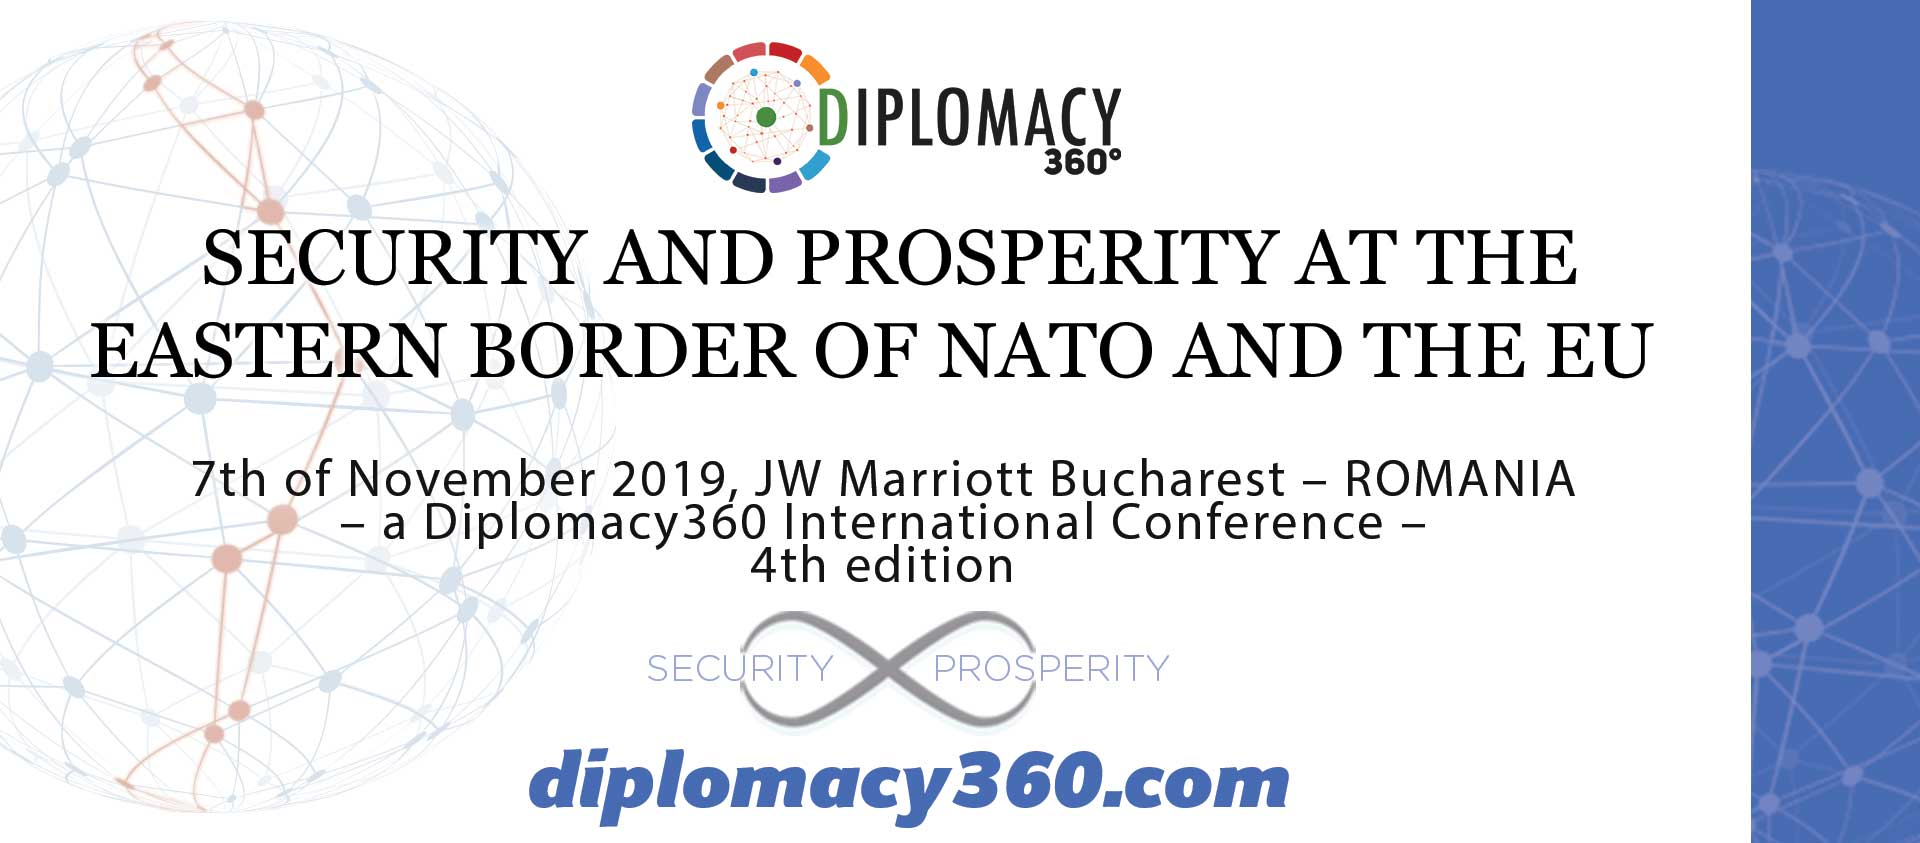 Diplomacy 360 SECURITY AND PROSPERITY AT THE EASTERN BORDER OF NATO AND THE EU bucharest romania